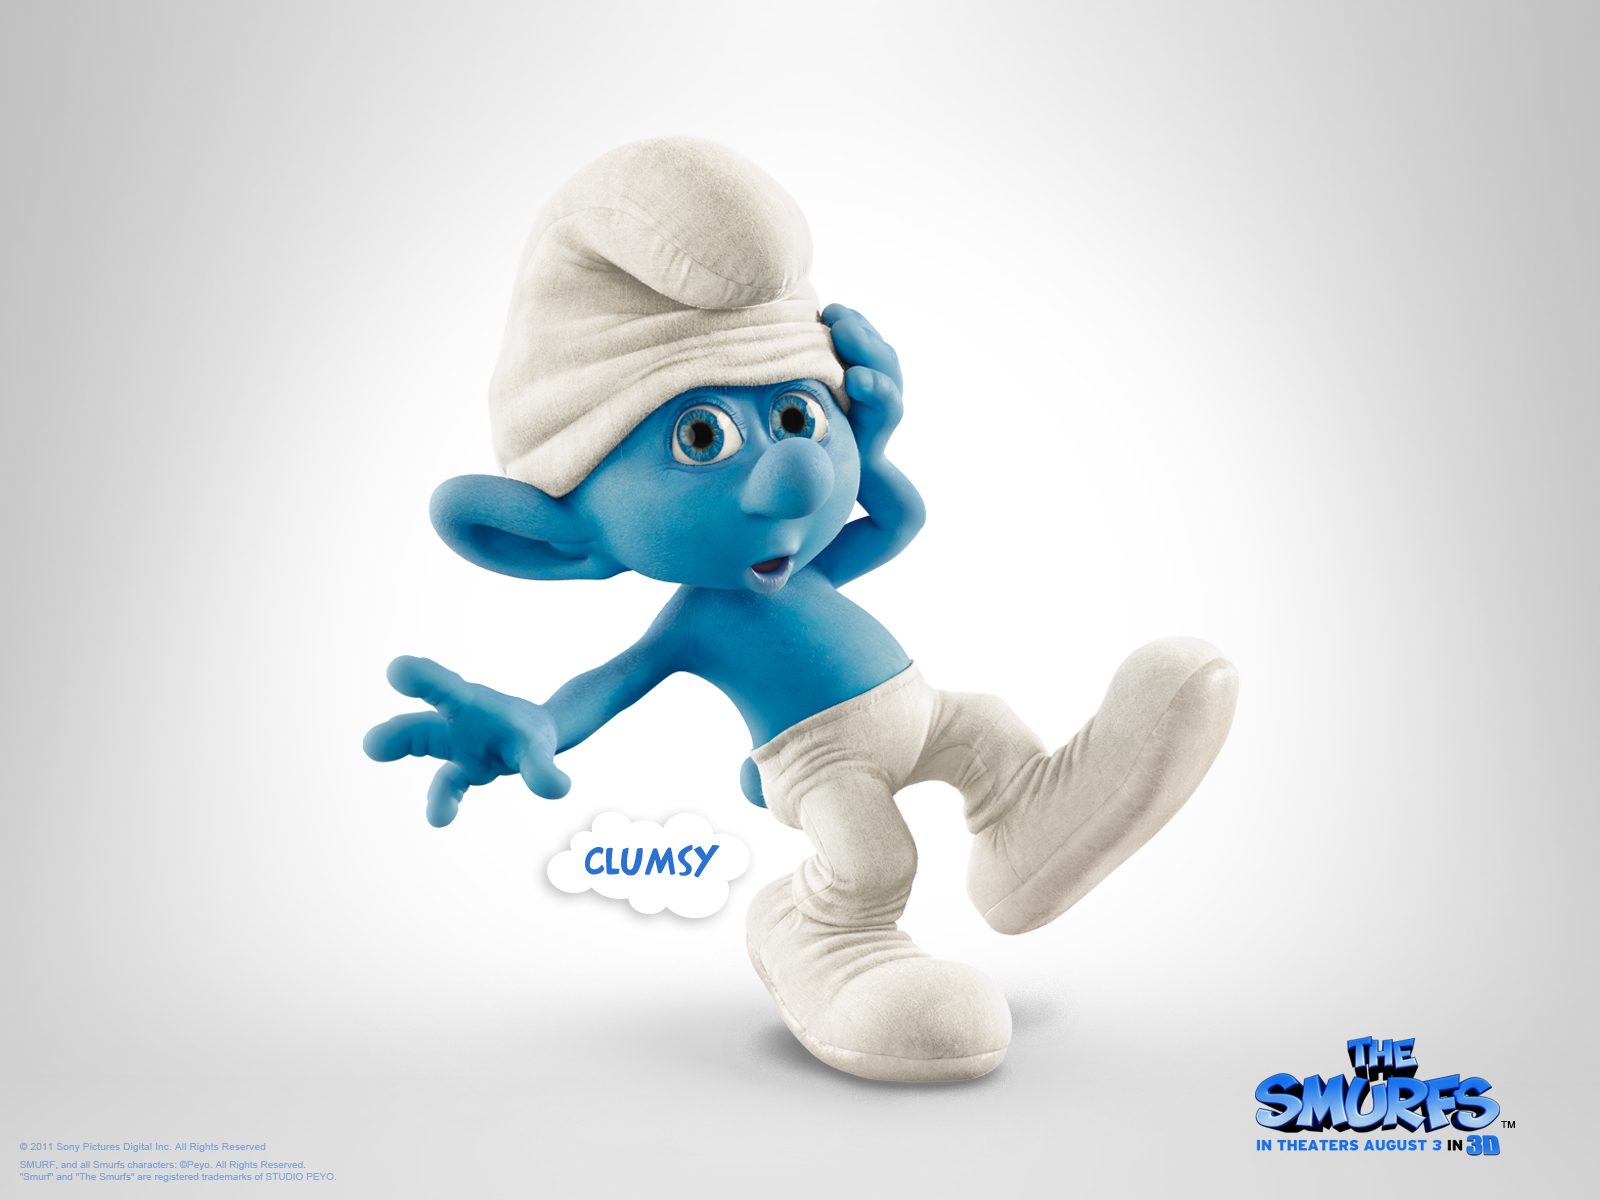 0 Down Cars >> Free Download The Smurfs Wallpapers - Technology News & Tips Hub